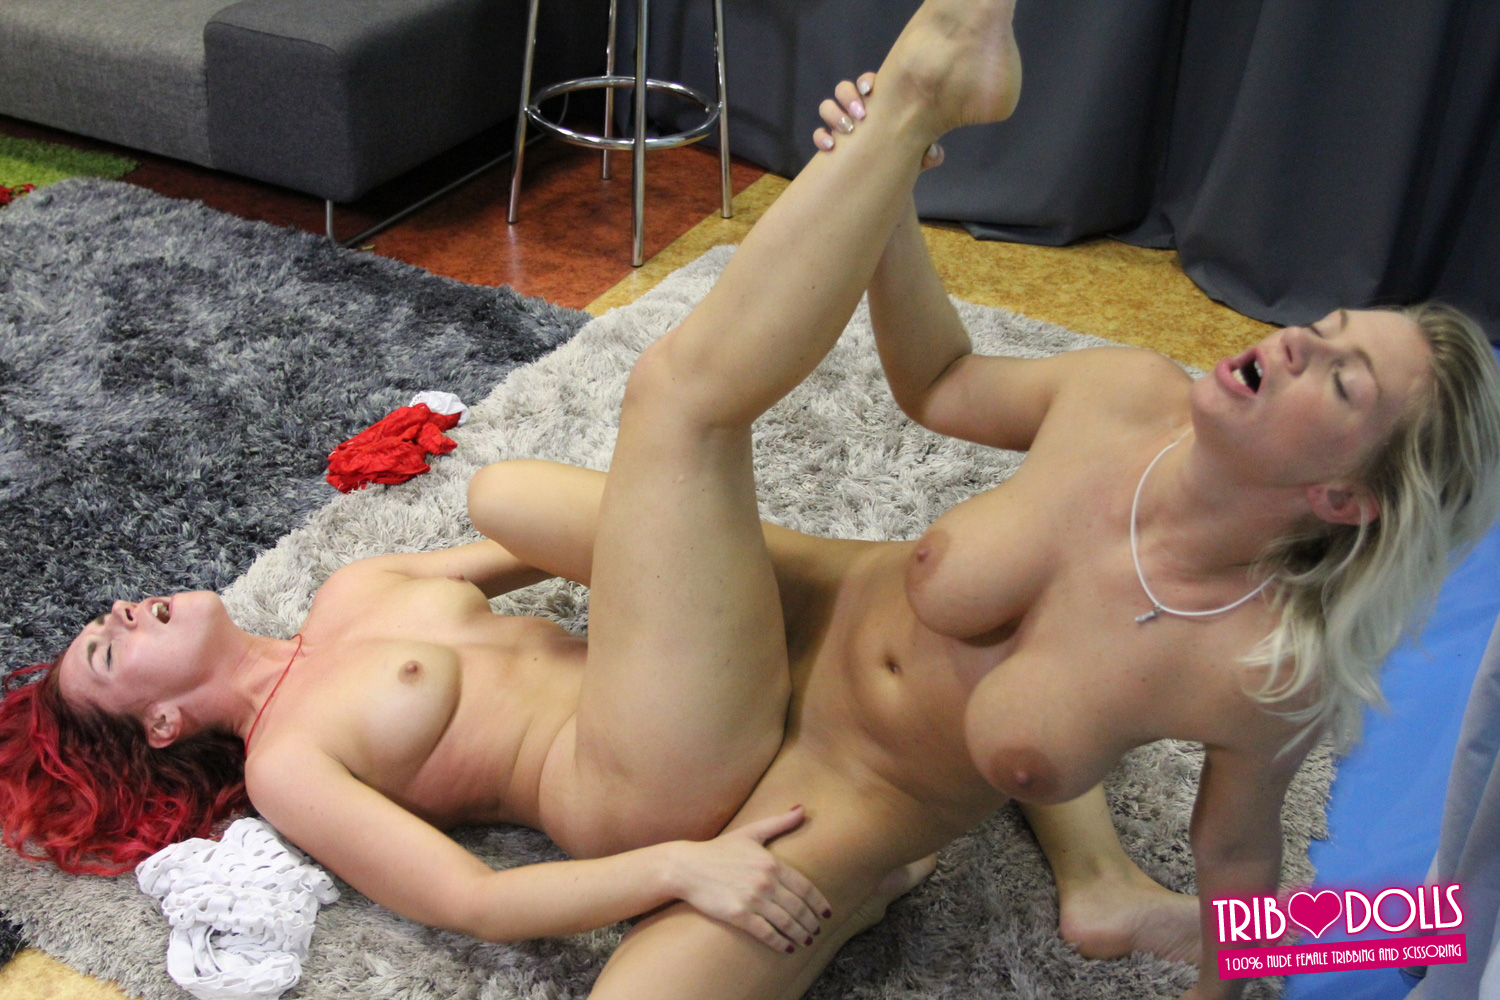 Hot lesbian sexfight blonde Eva vs redhead Luna at Trib Dolls